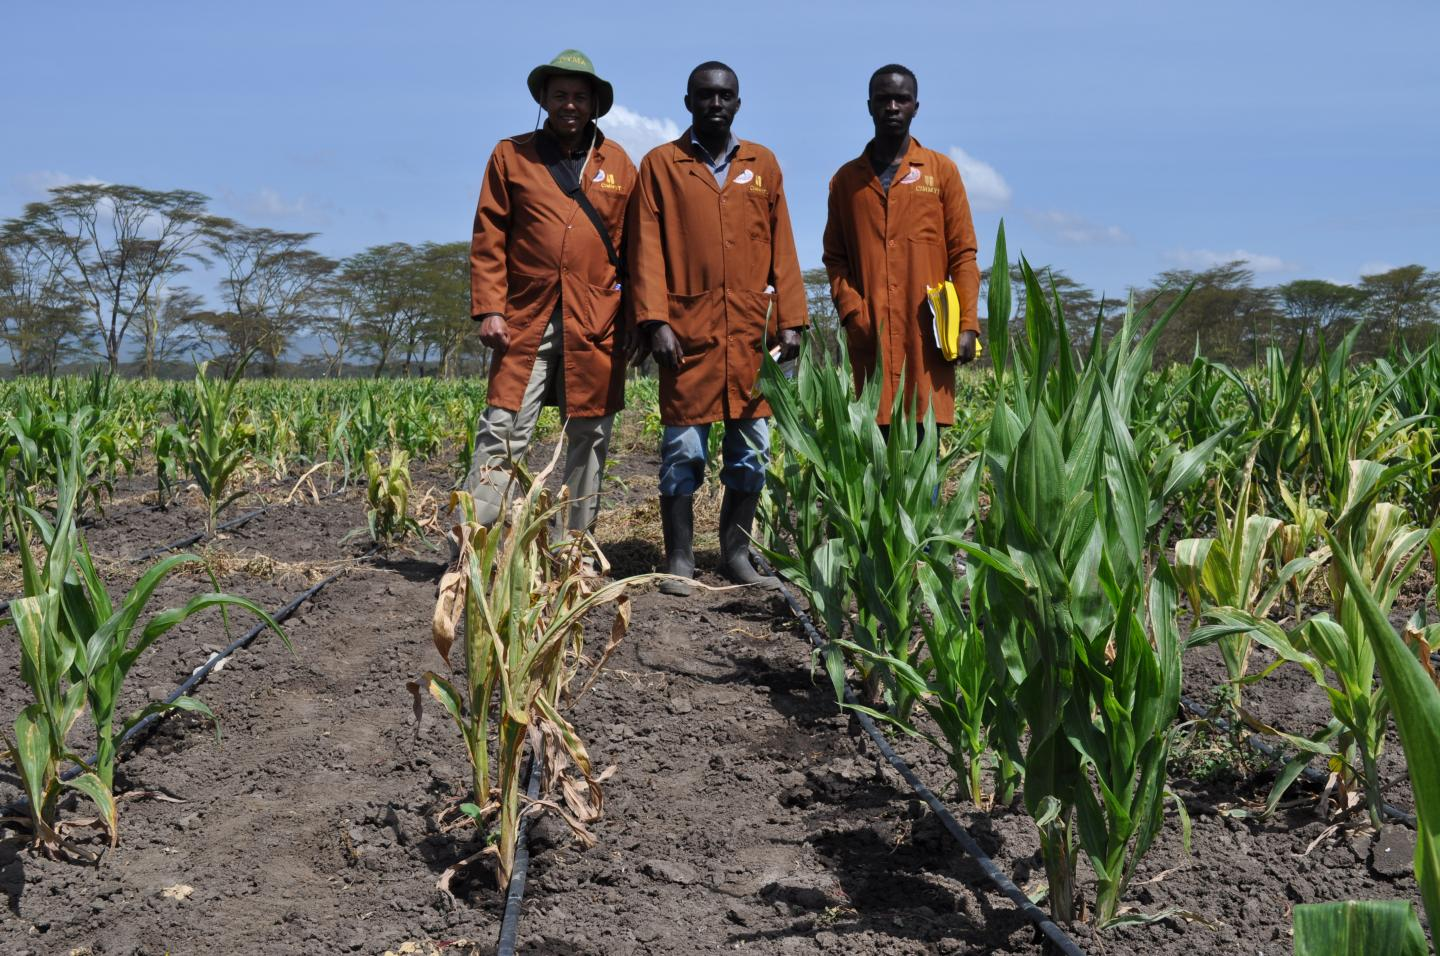 Open-source tools accelerate plant breeding in developing countries